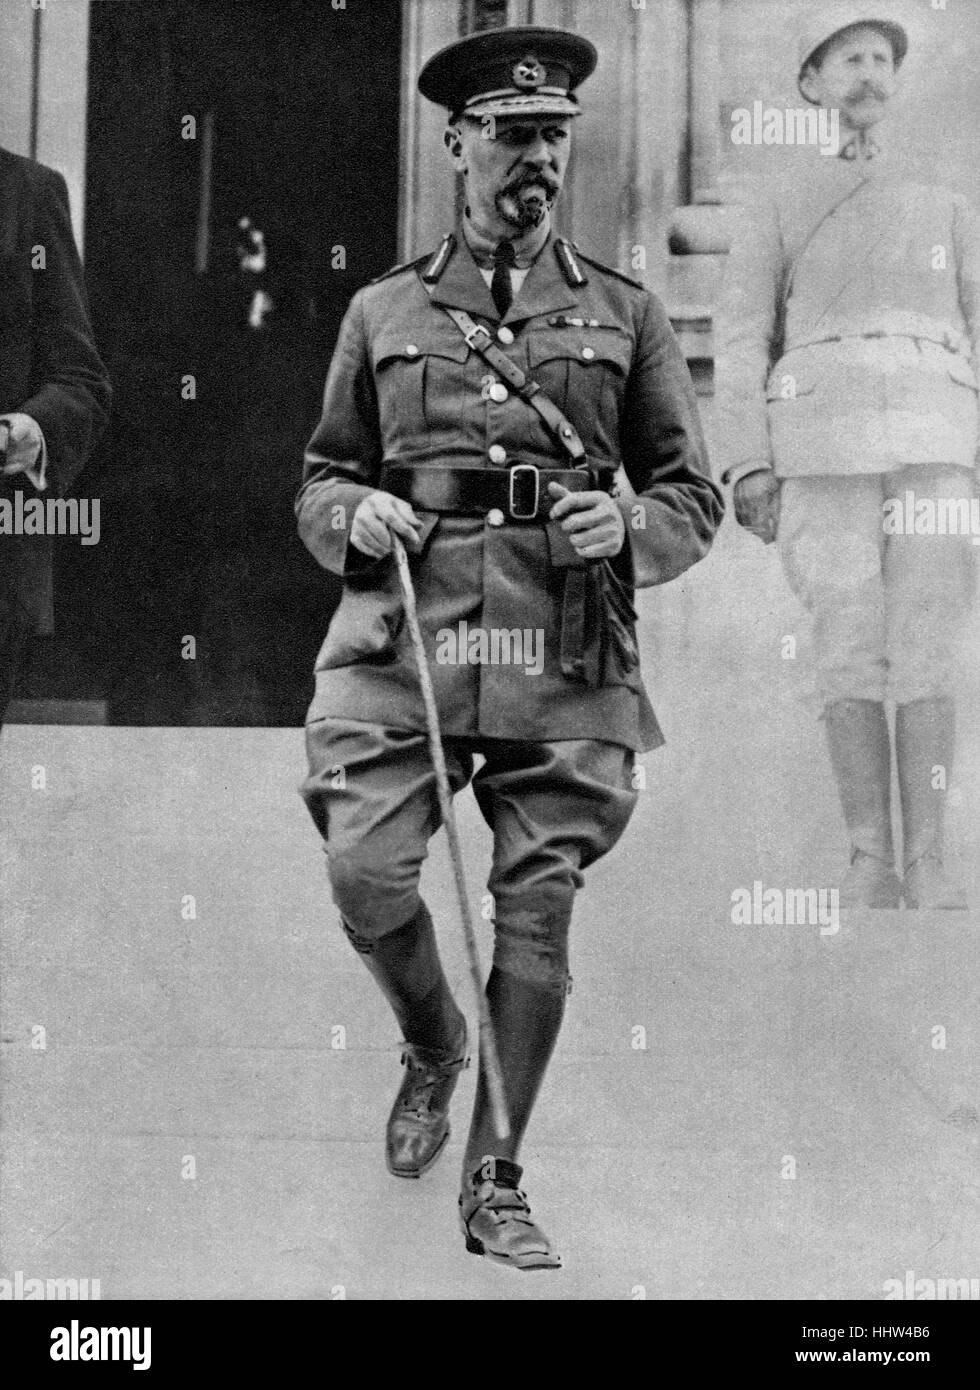 General Jan Christian Smuts (24 May 1870 – 11 September 1950), South African statesman, during the First World War, - Stock Image